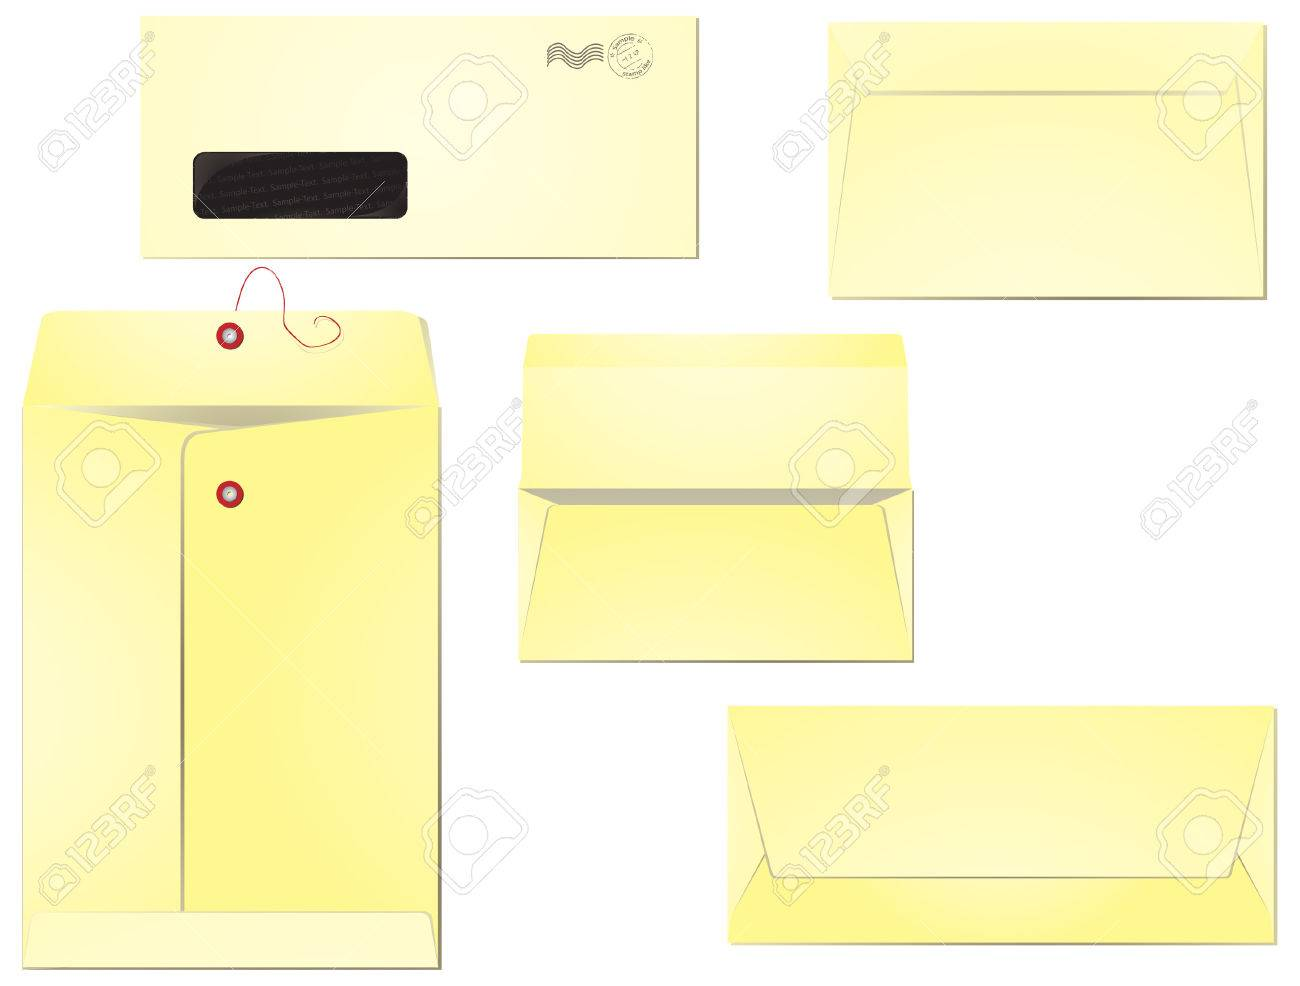 Five different types of envelopes for business correspondence and mailing. Layers clearly organised so the editing is simplified. 8, radial gradients used. Stock Vector - 5277366